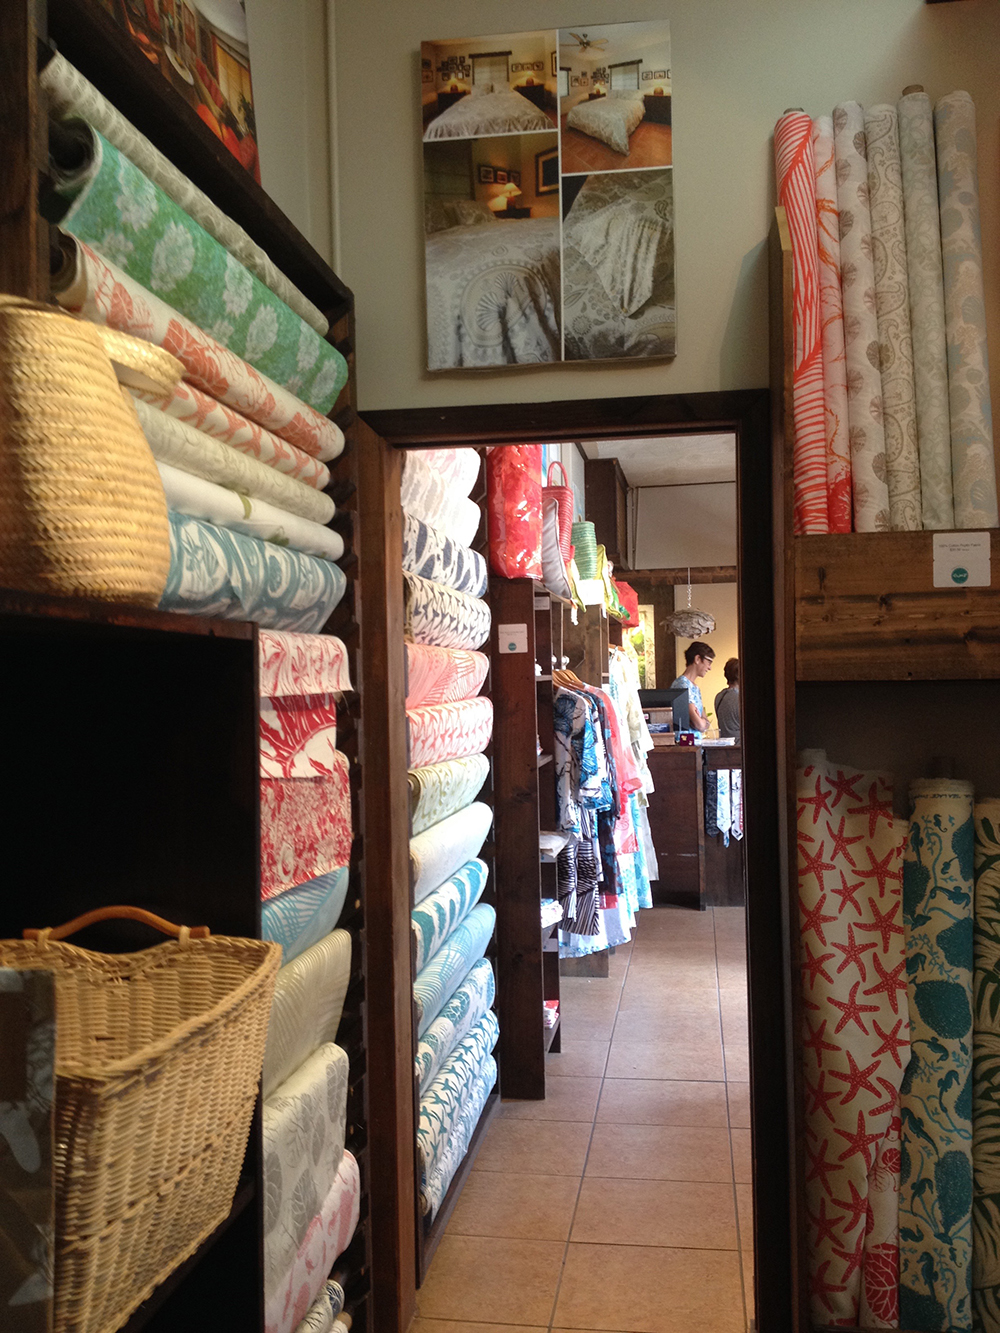 more fabric and Joie at the counter of the retail area